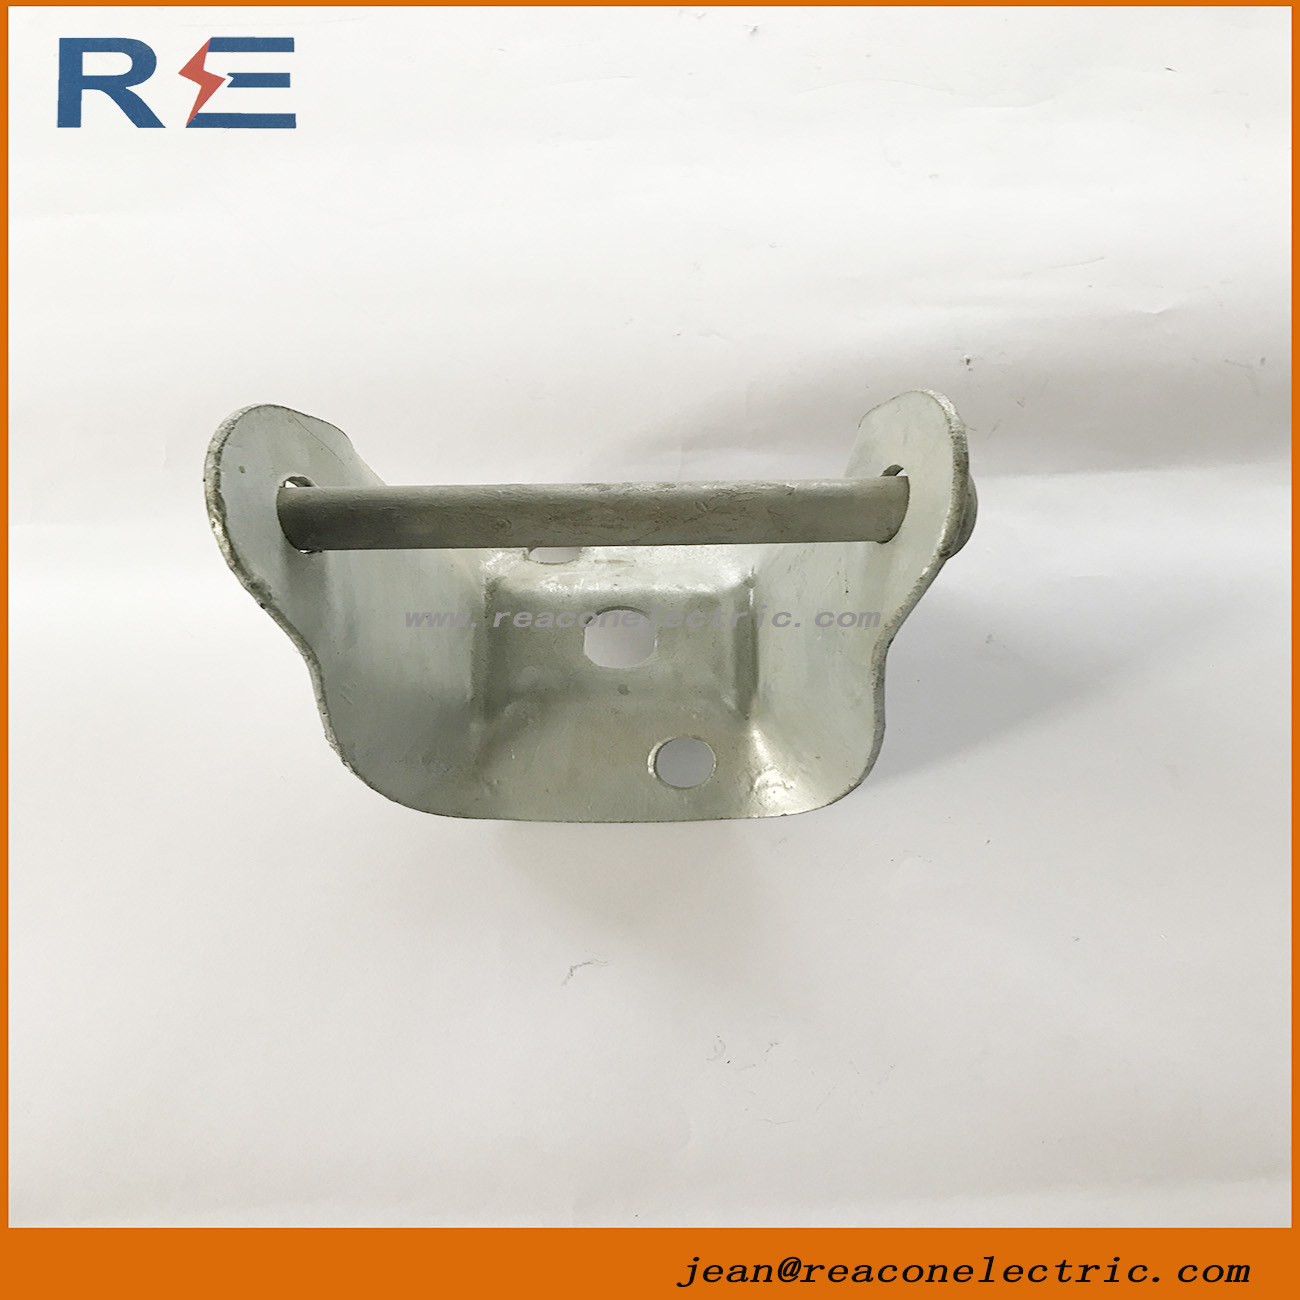 Cross Arm Clevis for Insulator 53-2